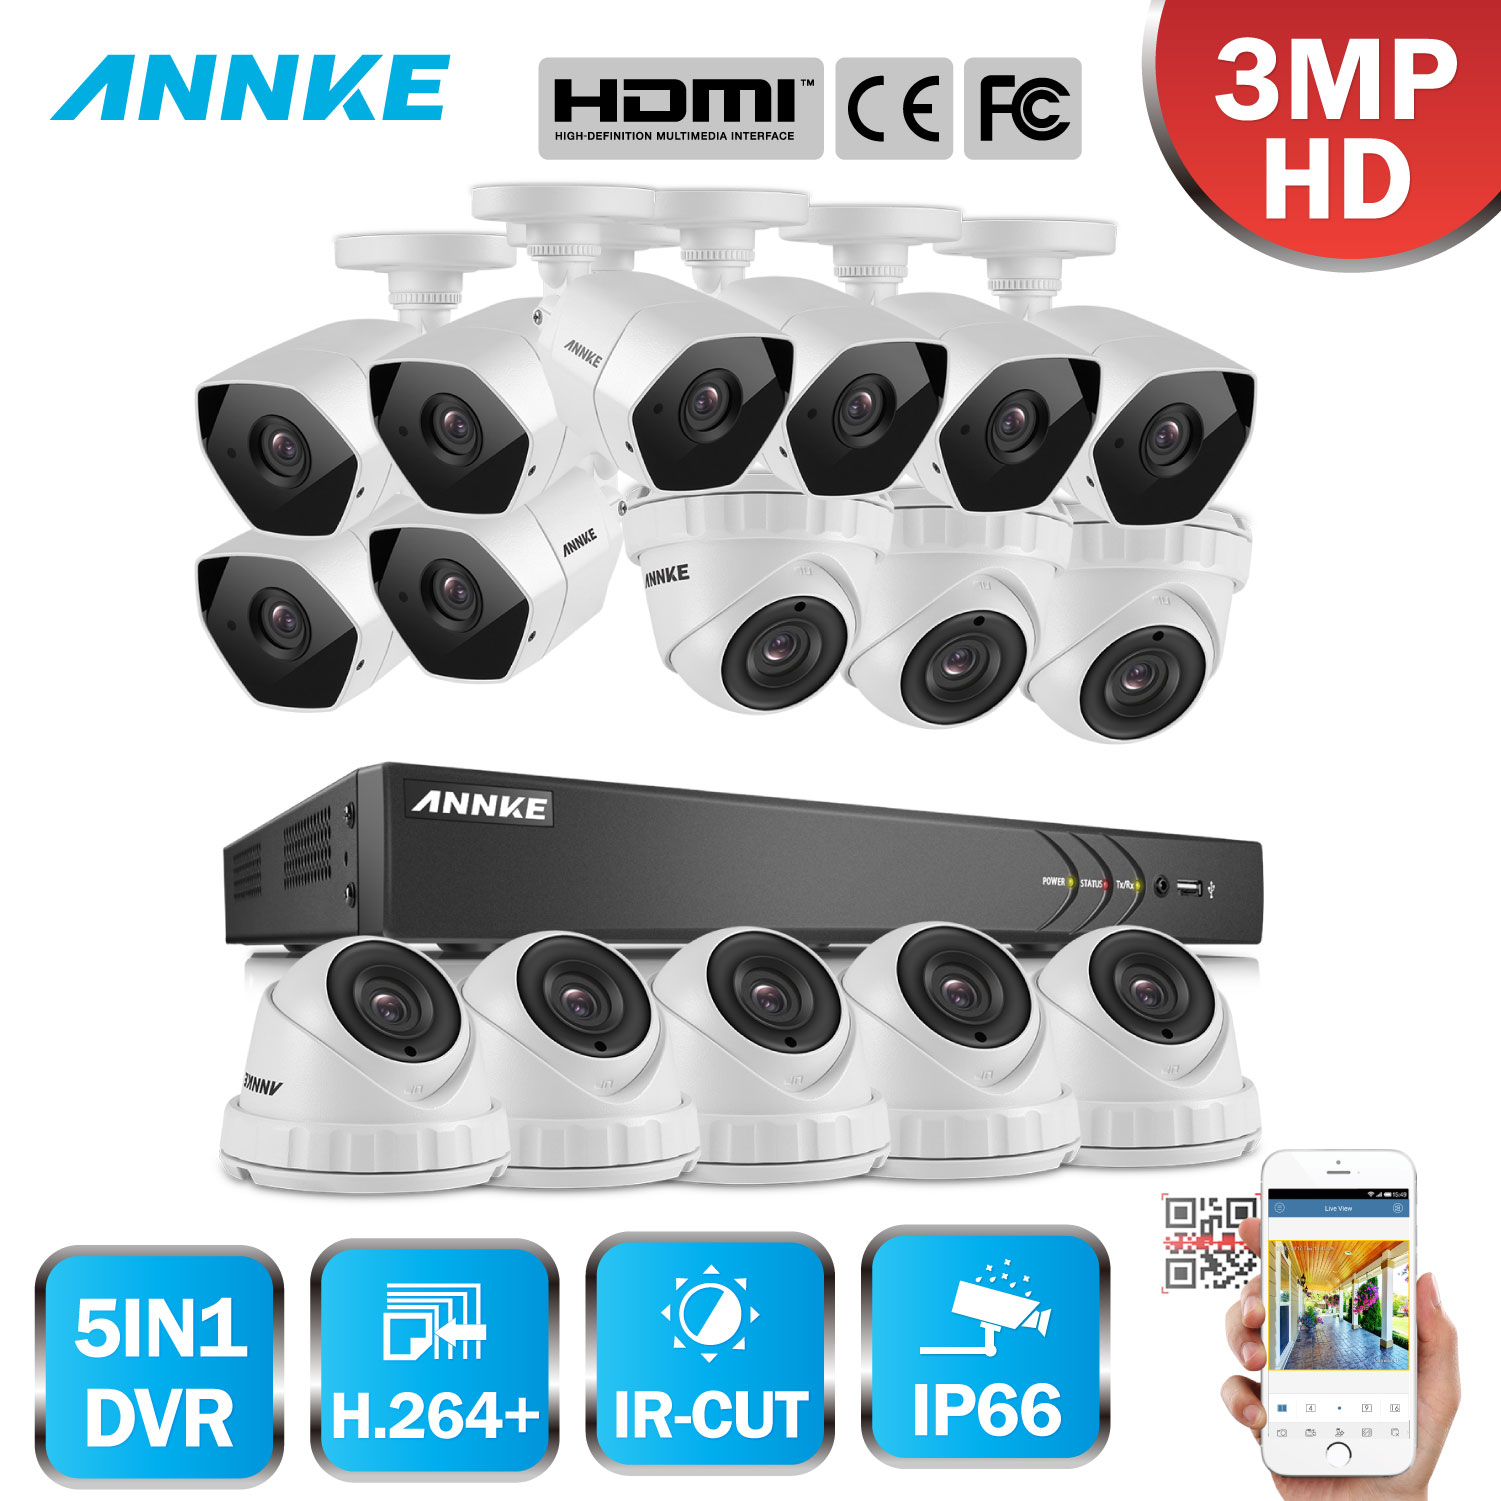 ANNKE Full HD 16CH 3MP 1920*1536 CCTV System H.264+ DVR 16pcs Security IR Outdoor Waterproof Camera 3MP Video Surveillance Kit home security system 16ch h 264 motion detect camera system dvr kit with 800tvl waterproof outdoor ir night vision cctv camera